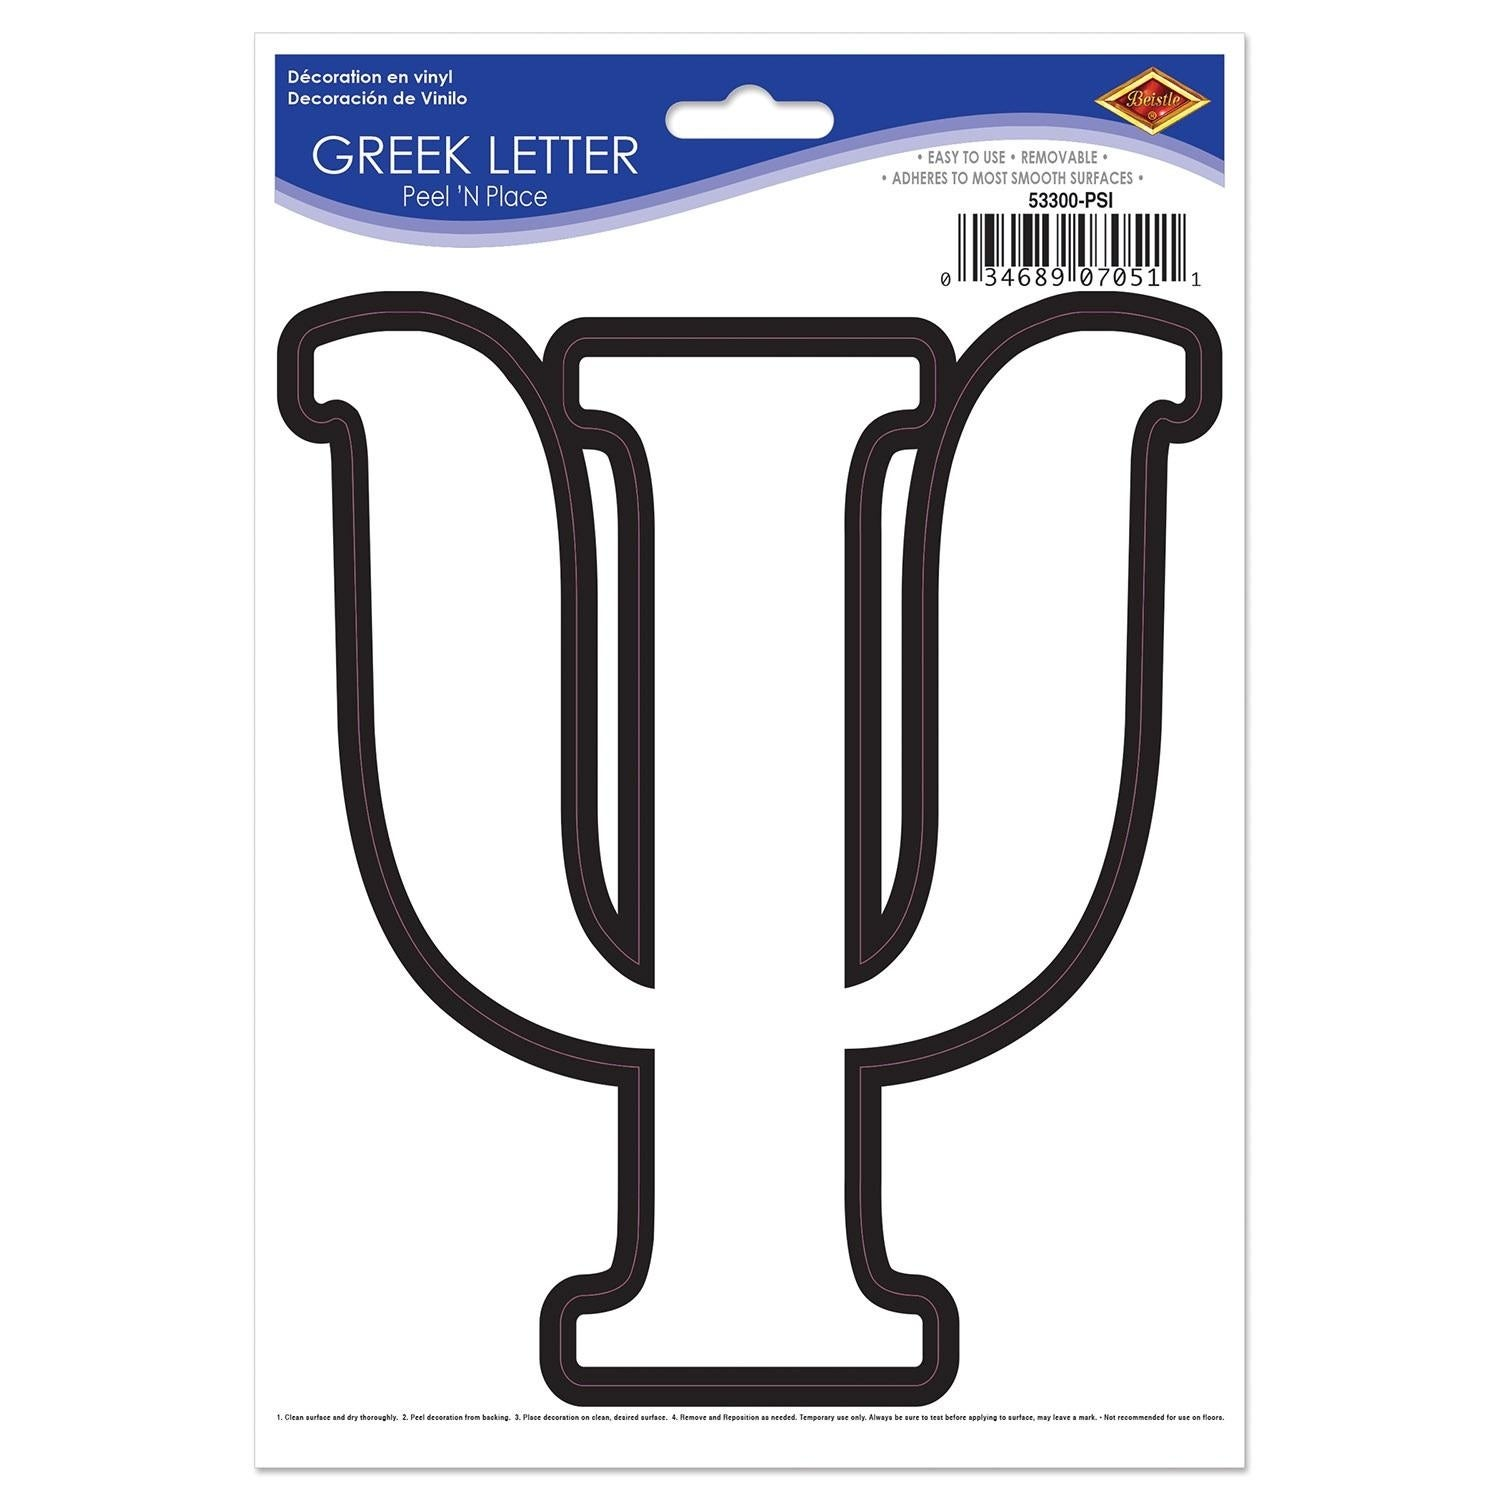 Shop Club Pack of 12 Peel 'N Place Decorative Vinyl Greek Letter